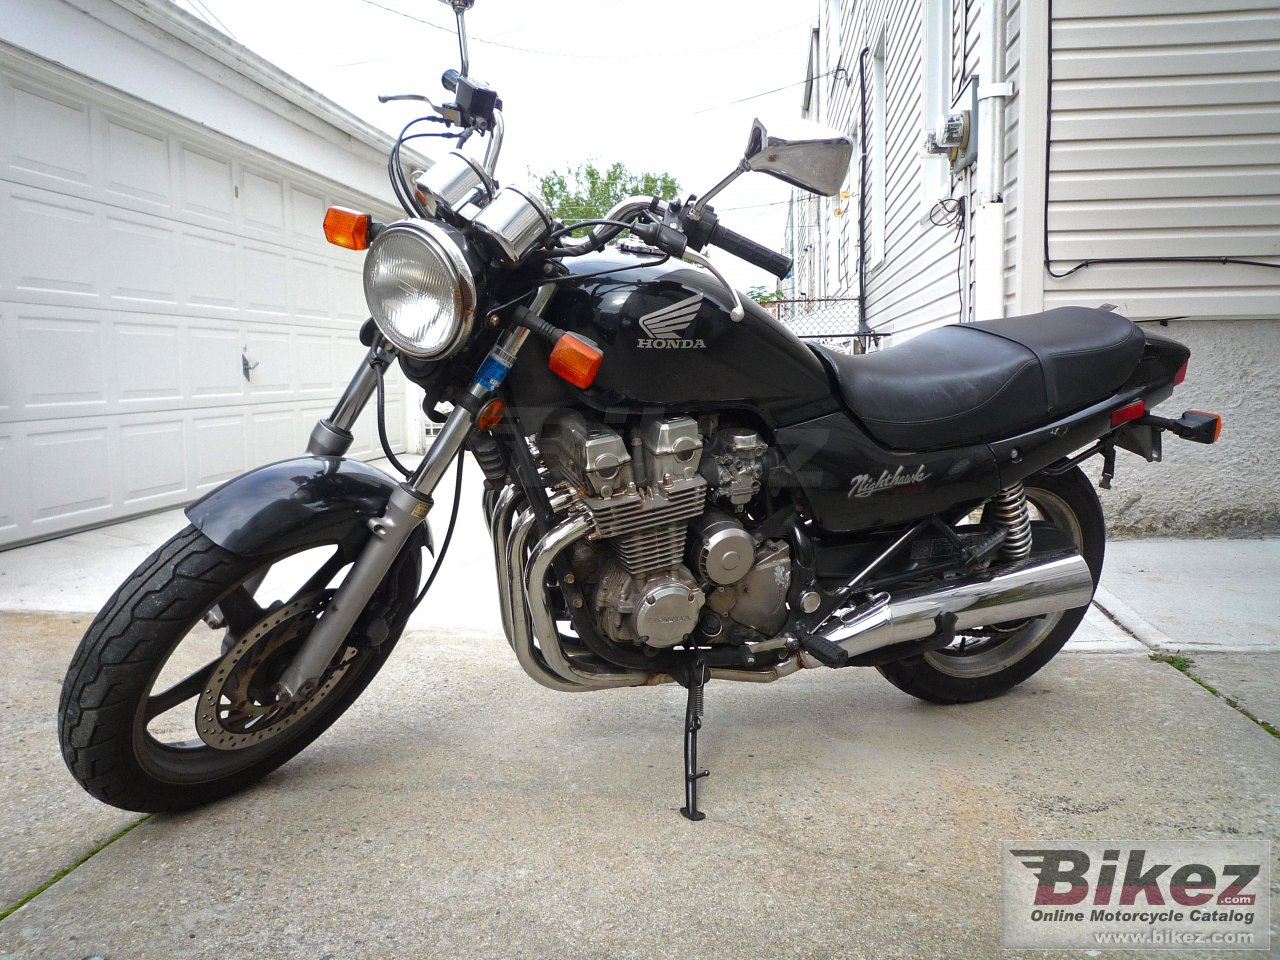 Honda CB 750 (reduced effect)